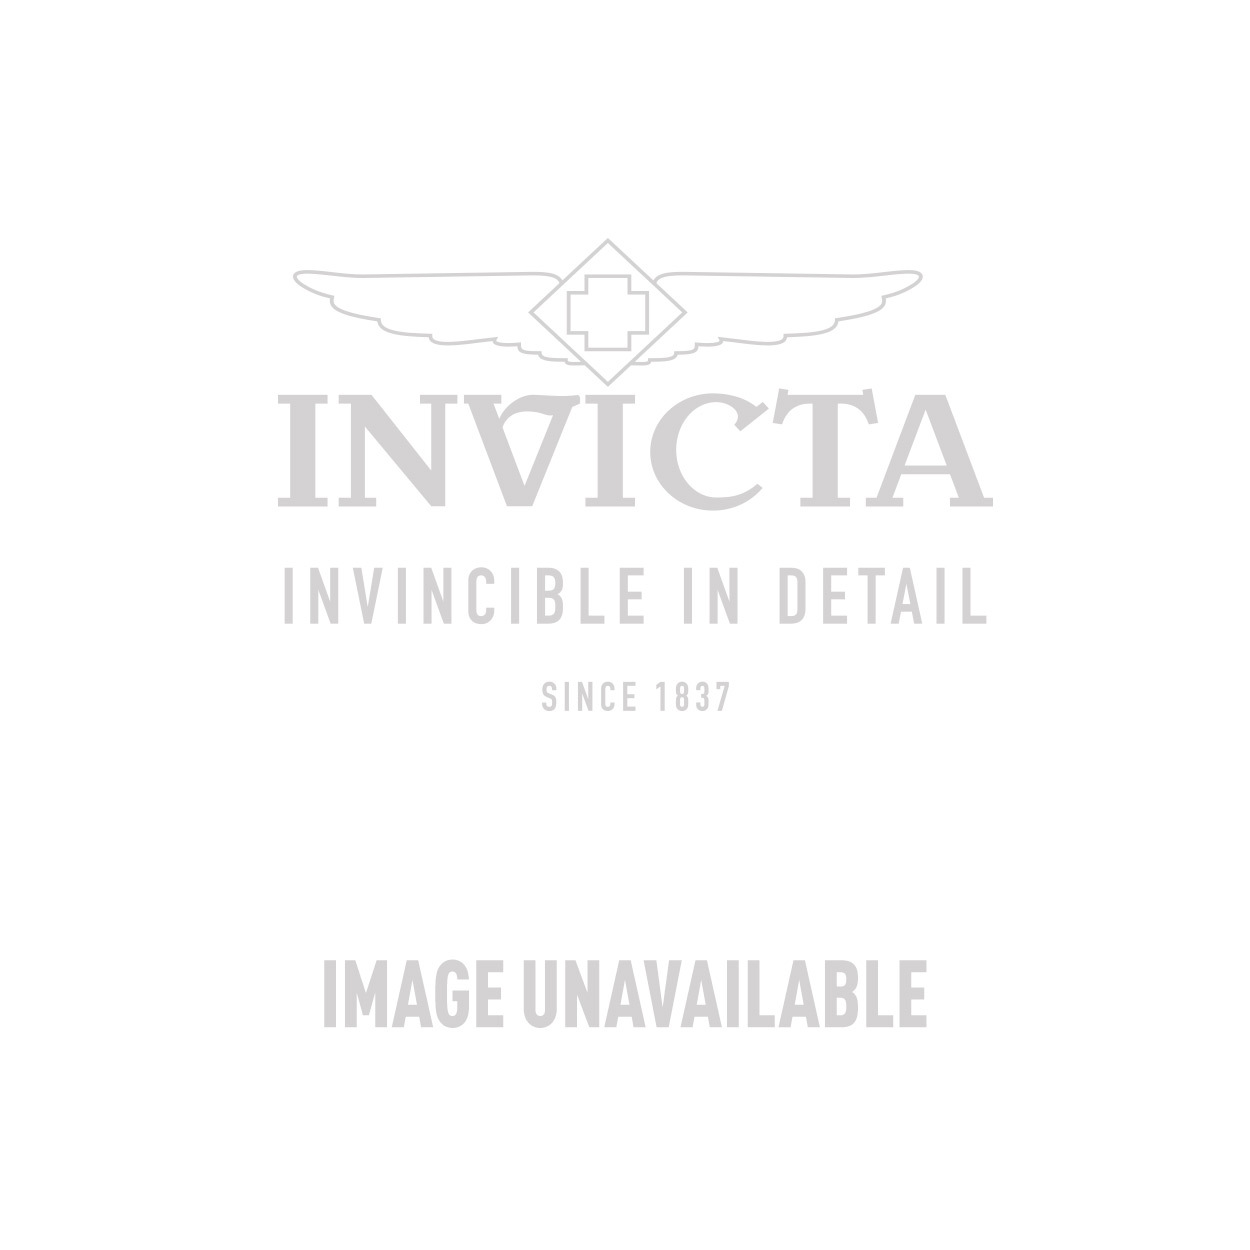 Invicta Angel Swiss Movement Quartz Watch - Brown case with Brown tone Stainless Steel band - Model 11773